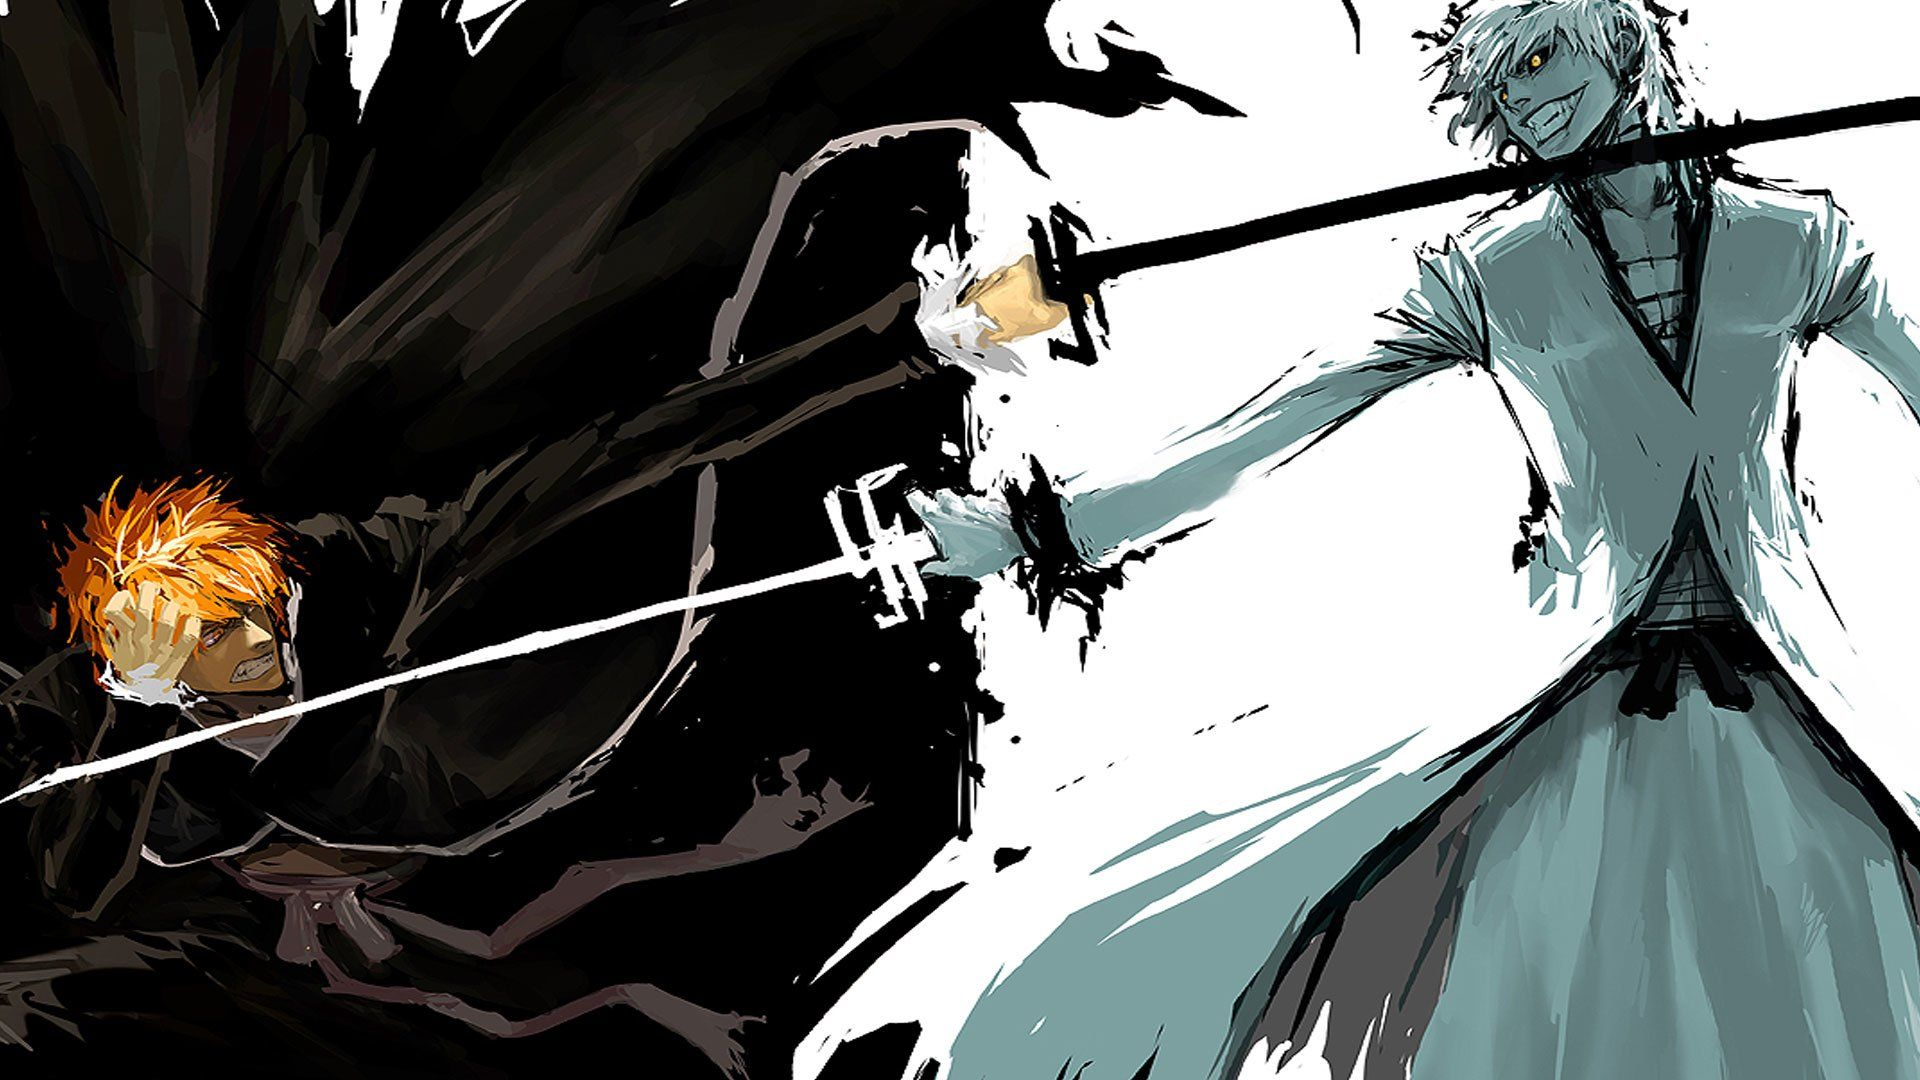 Bleach 4k Ultra Hd Wallpapers Top Free Bleach 4k Ultra Hd